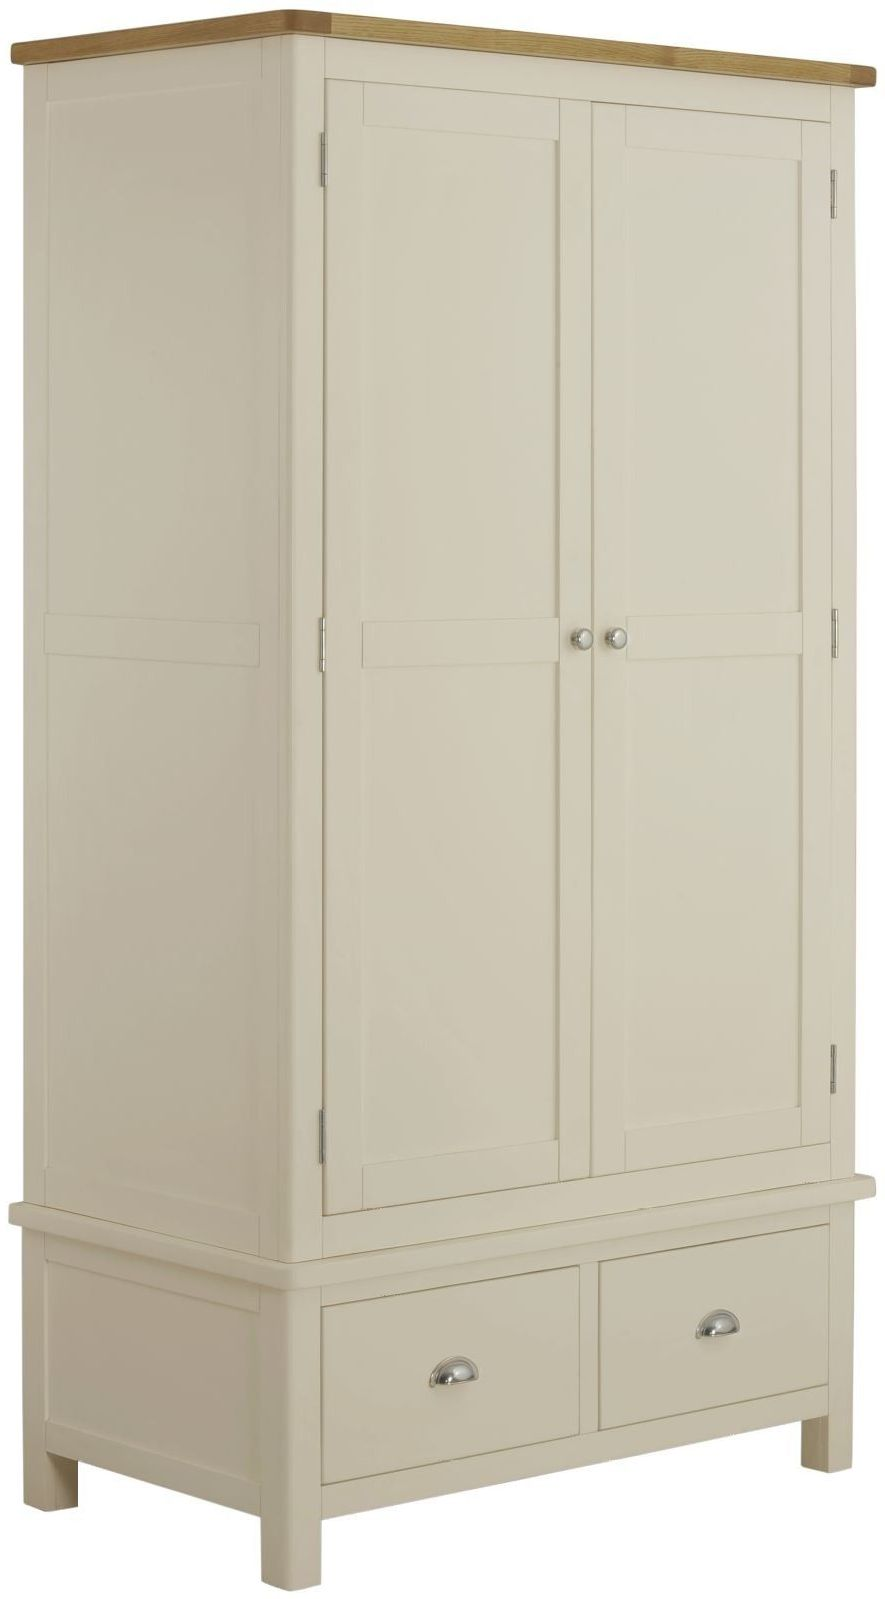 Stratton Cream Wardrobe Gents